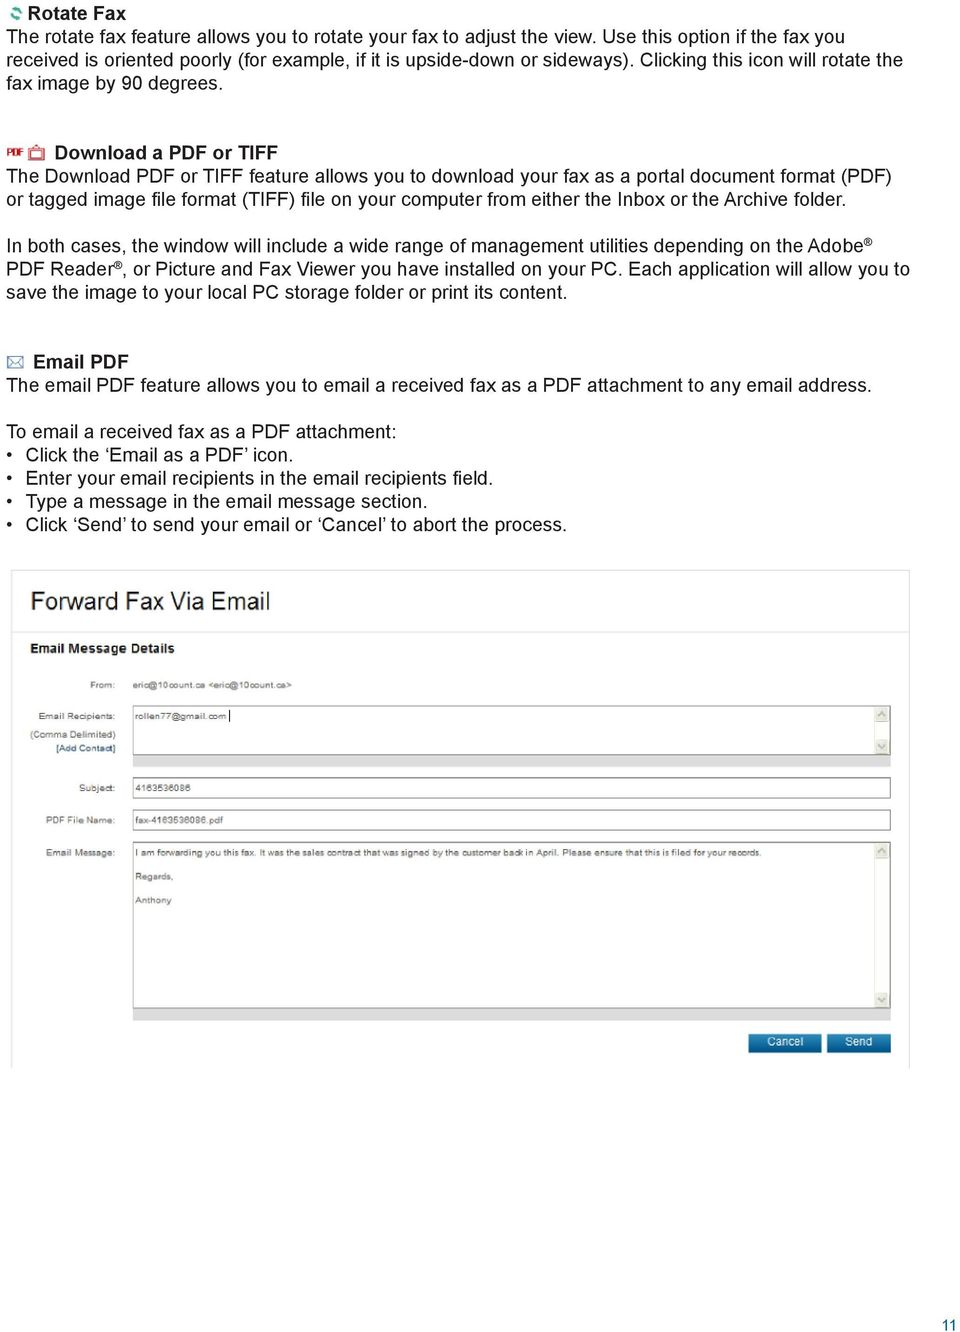 Download a PDF or TIFF The Download PDF or TIFF feature allows you to download your fax as a portal document format (PDF) or tagged image file format (TIFF) file on your computer from either the